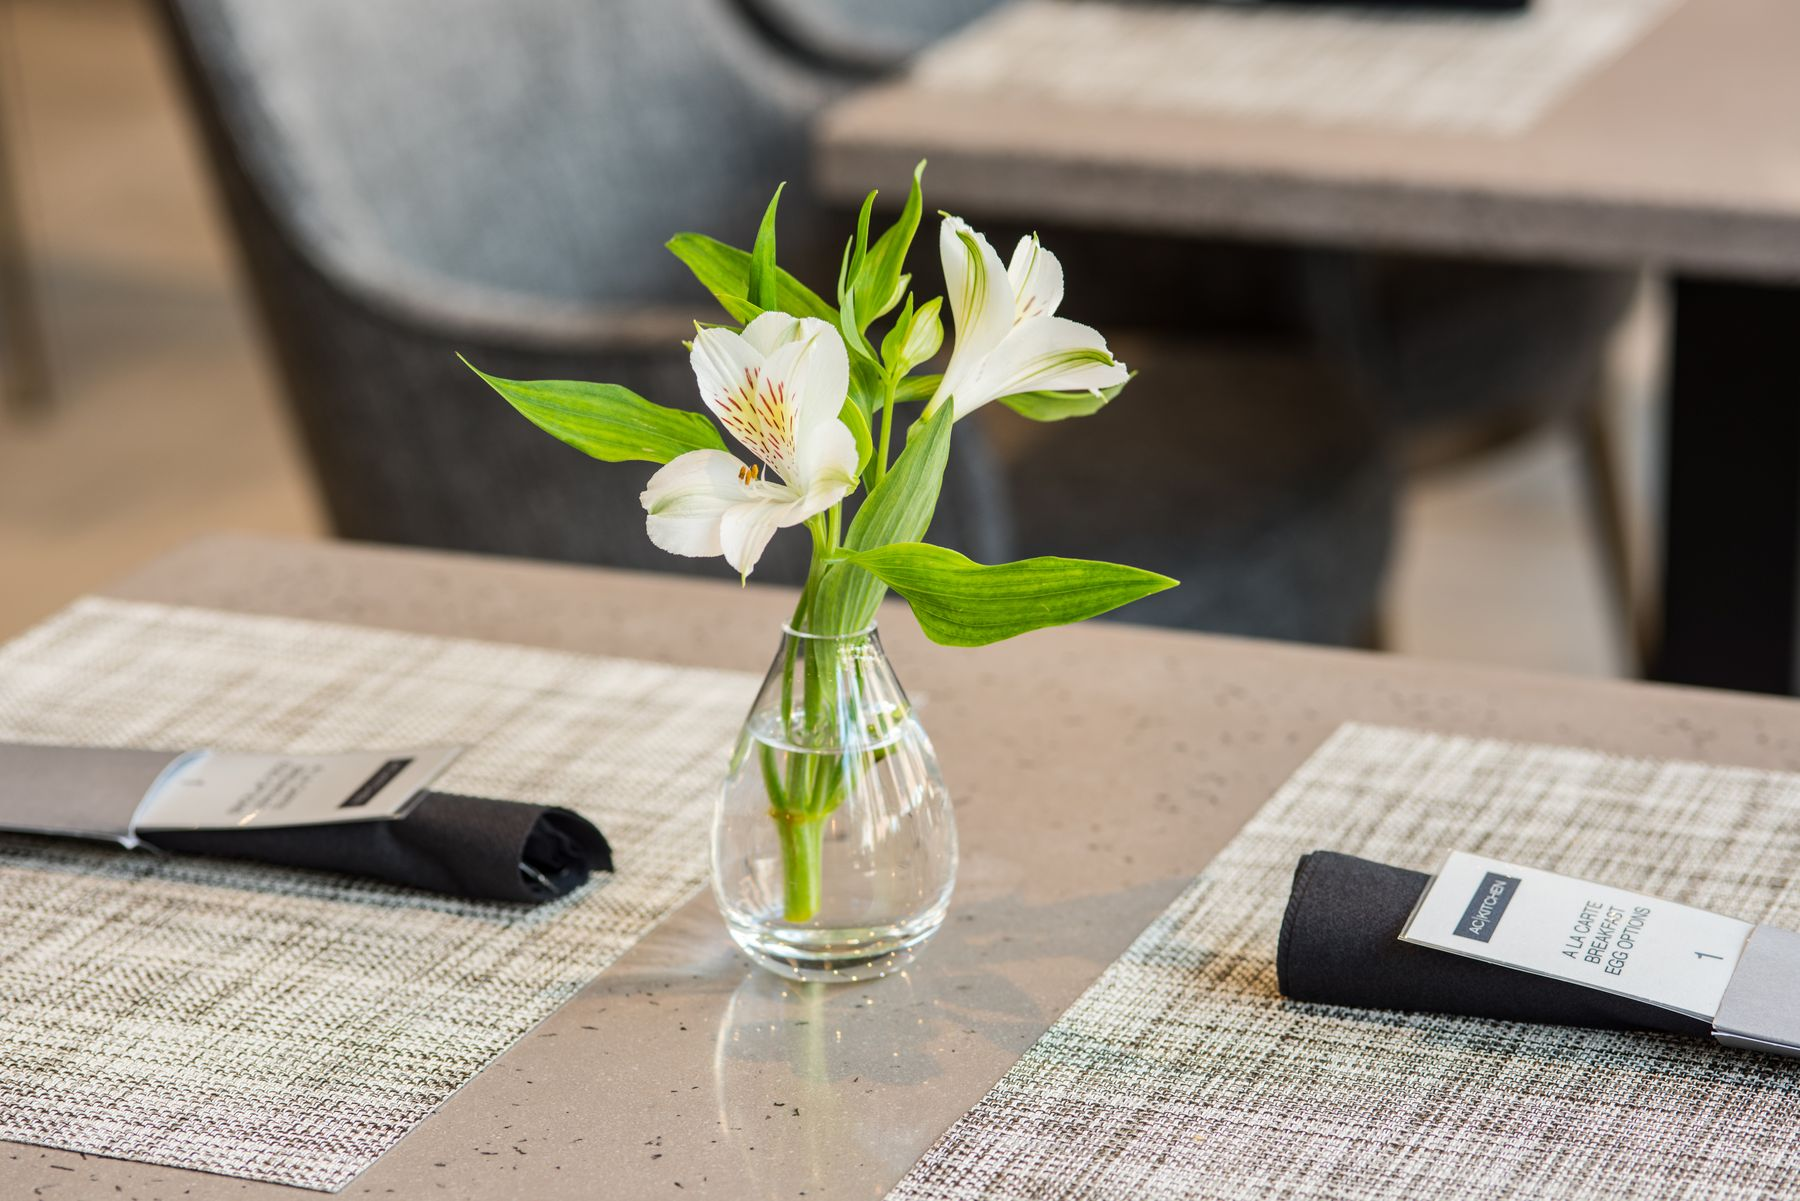 Small vase of flowers on table